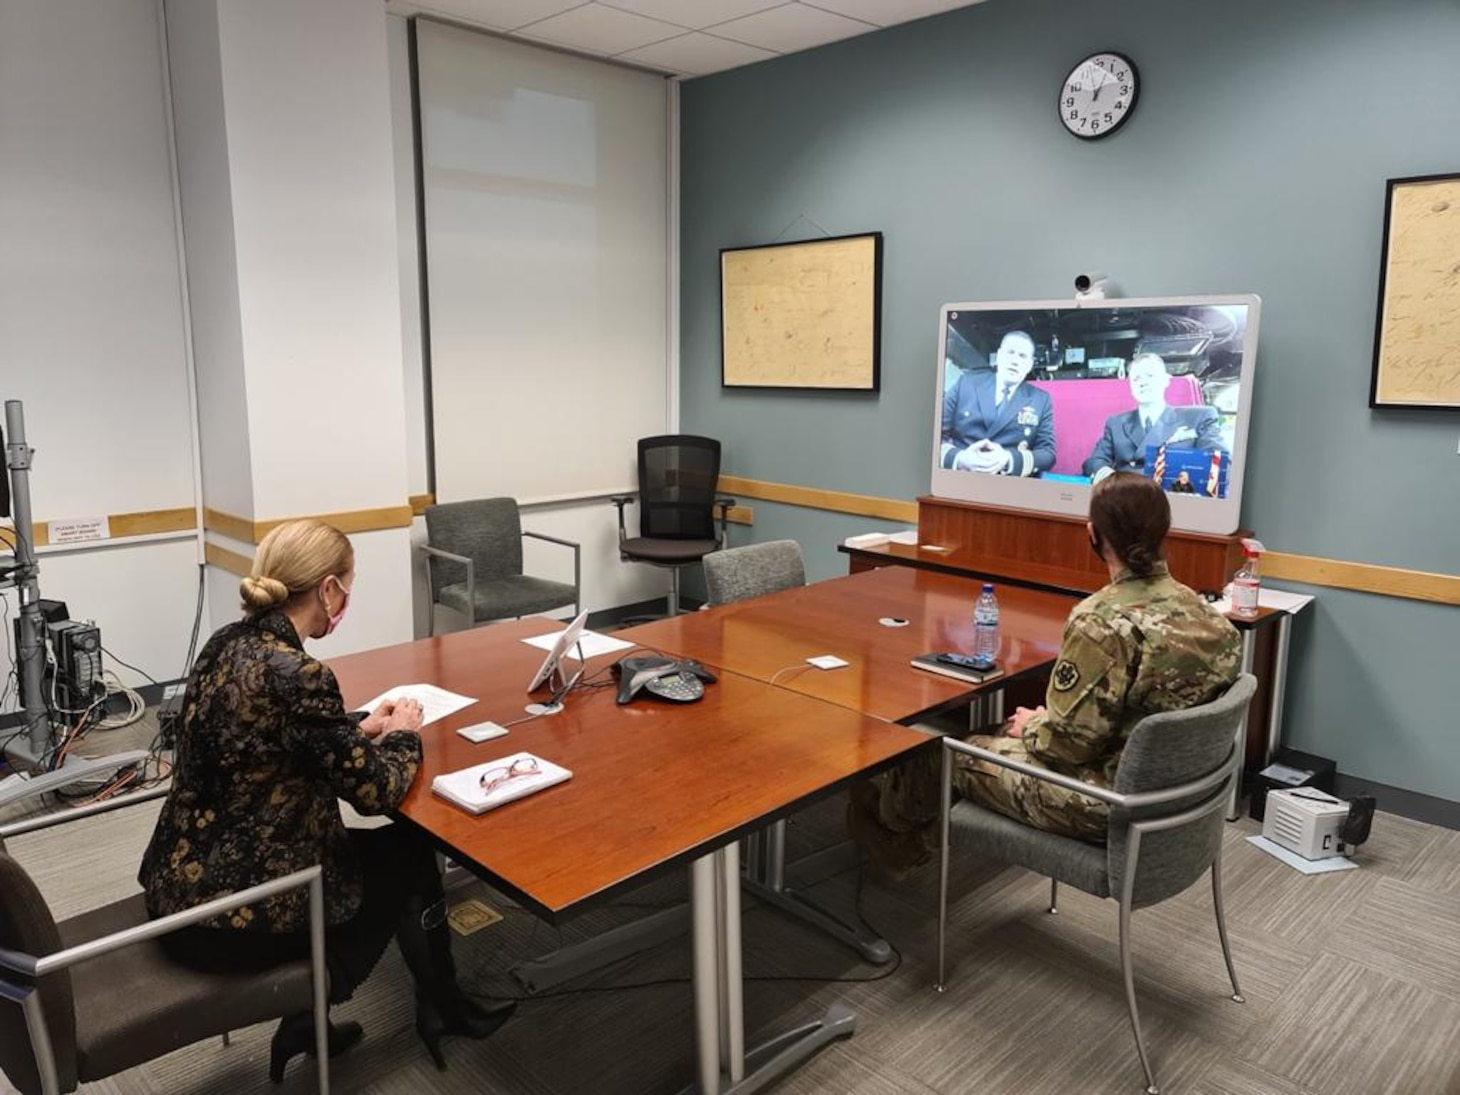 BATUMI, Georgia (Feb. 5, 2021) Ambassador Kelly Degnan and Defense Attaché Col. Stephanie Bagley meet virtually with Arleigh Burke-class guided-missile destroyer USS Donald Cook (DDG 75) Commanding Officer, Cdr. Matthew Curnen and Executive Officer, Cdr. Kurt Astroth while the ship makes a brief stop for fuel and supplies in Batumi, Georgia, Feb. 5, 2021. Donald Cook, forward-deployed to Rota, Spain, is on patrol in the U.S. Sixth Fleet area of operations in support of regional allies and partners and U.S. national security in Europe and Africa. (U.S. Navy photo courtesy of Georgia Embassy courtesy/Released)